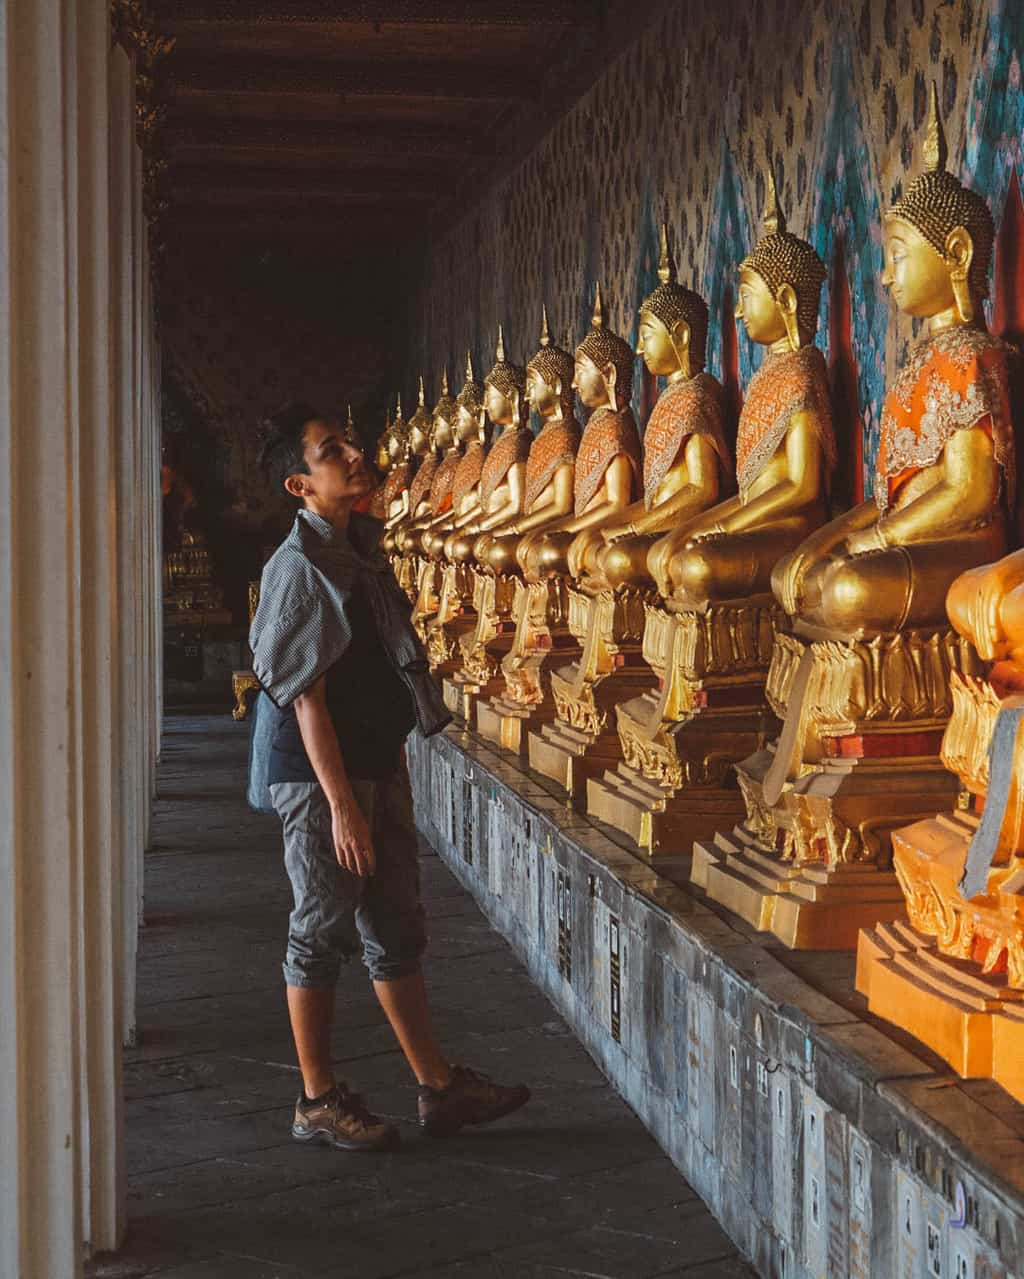 a woman standing in front of a row of golden Buddhas, planning a trip to thailand